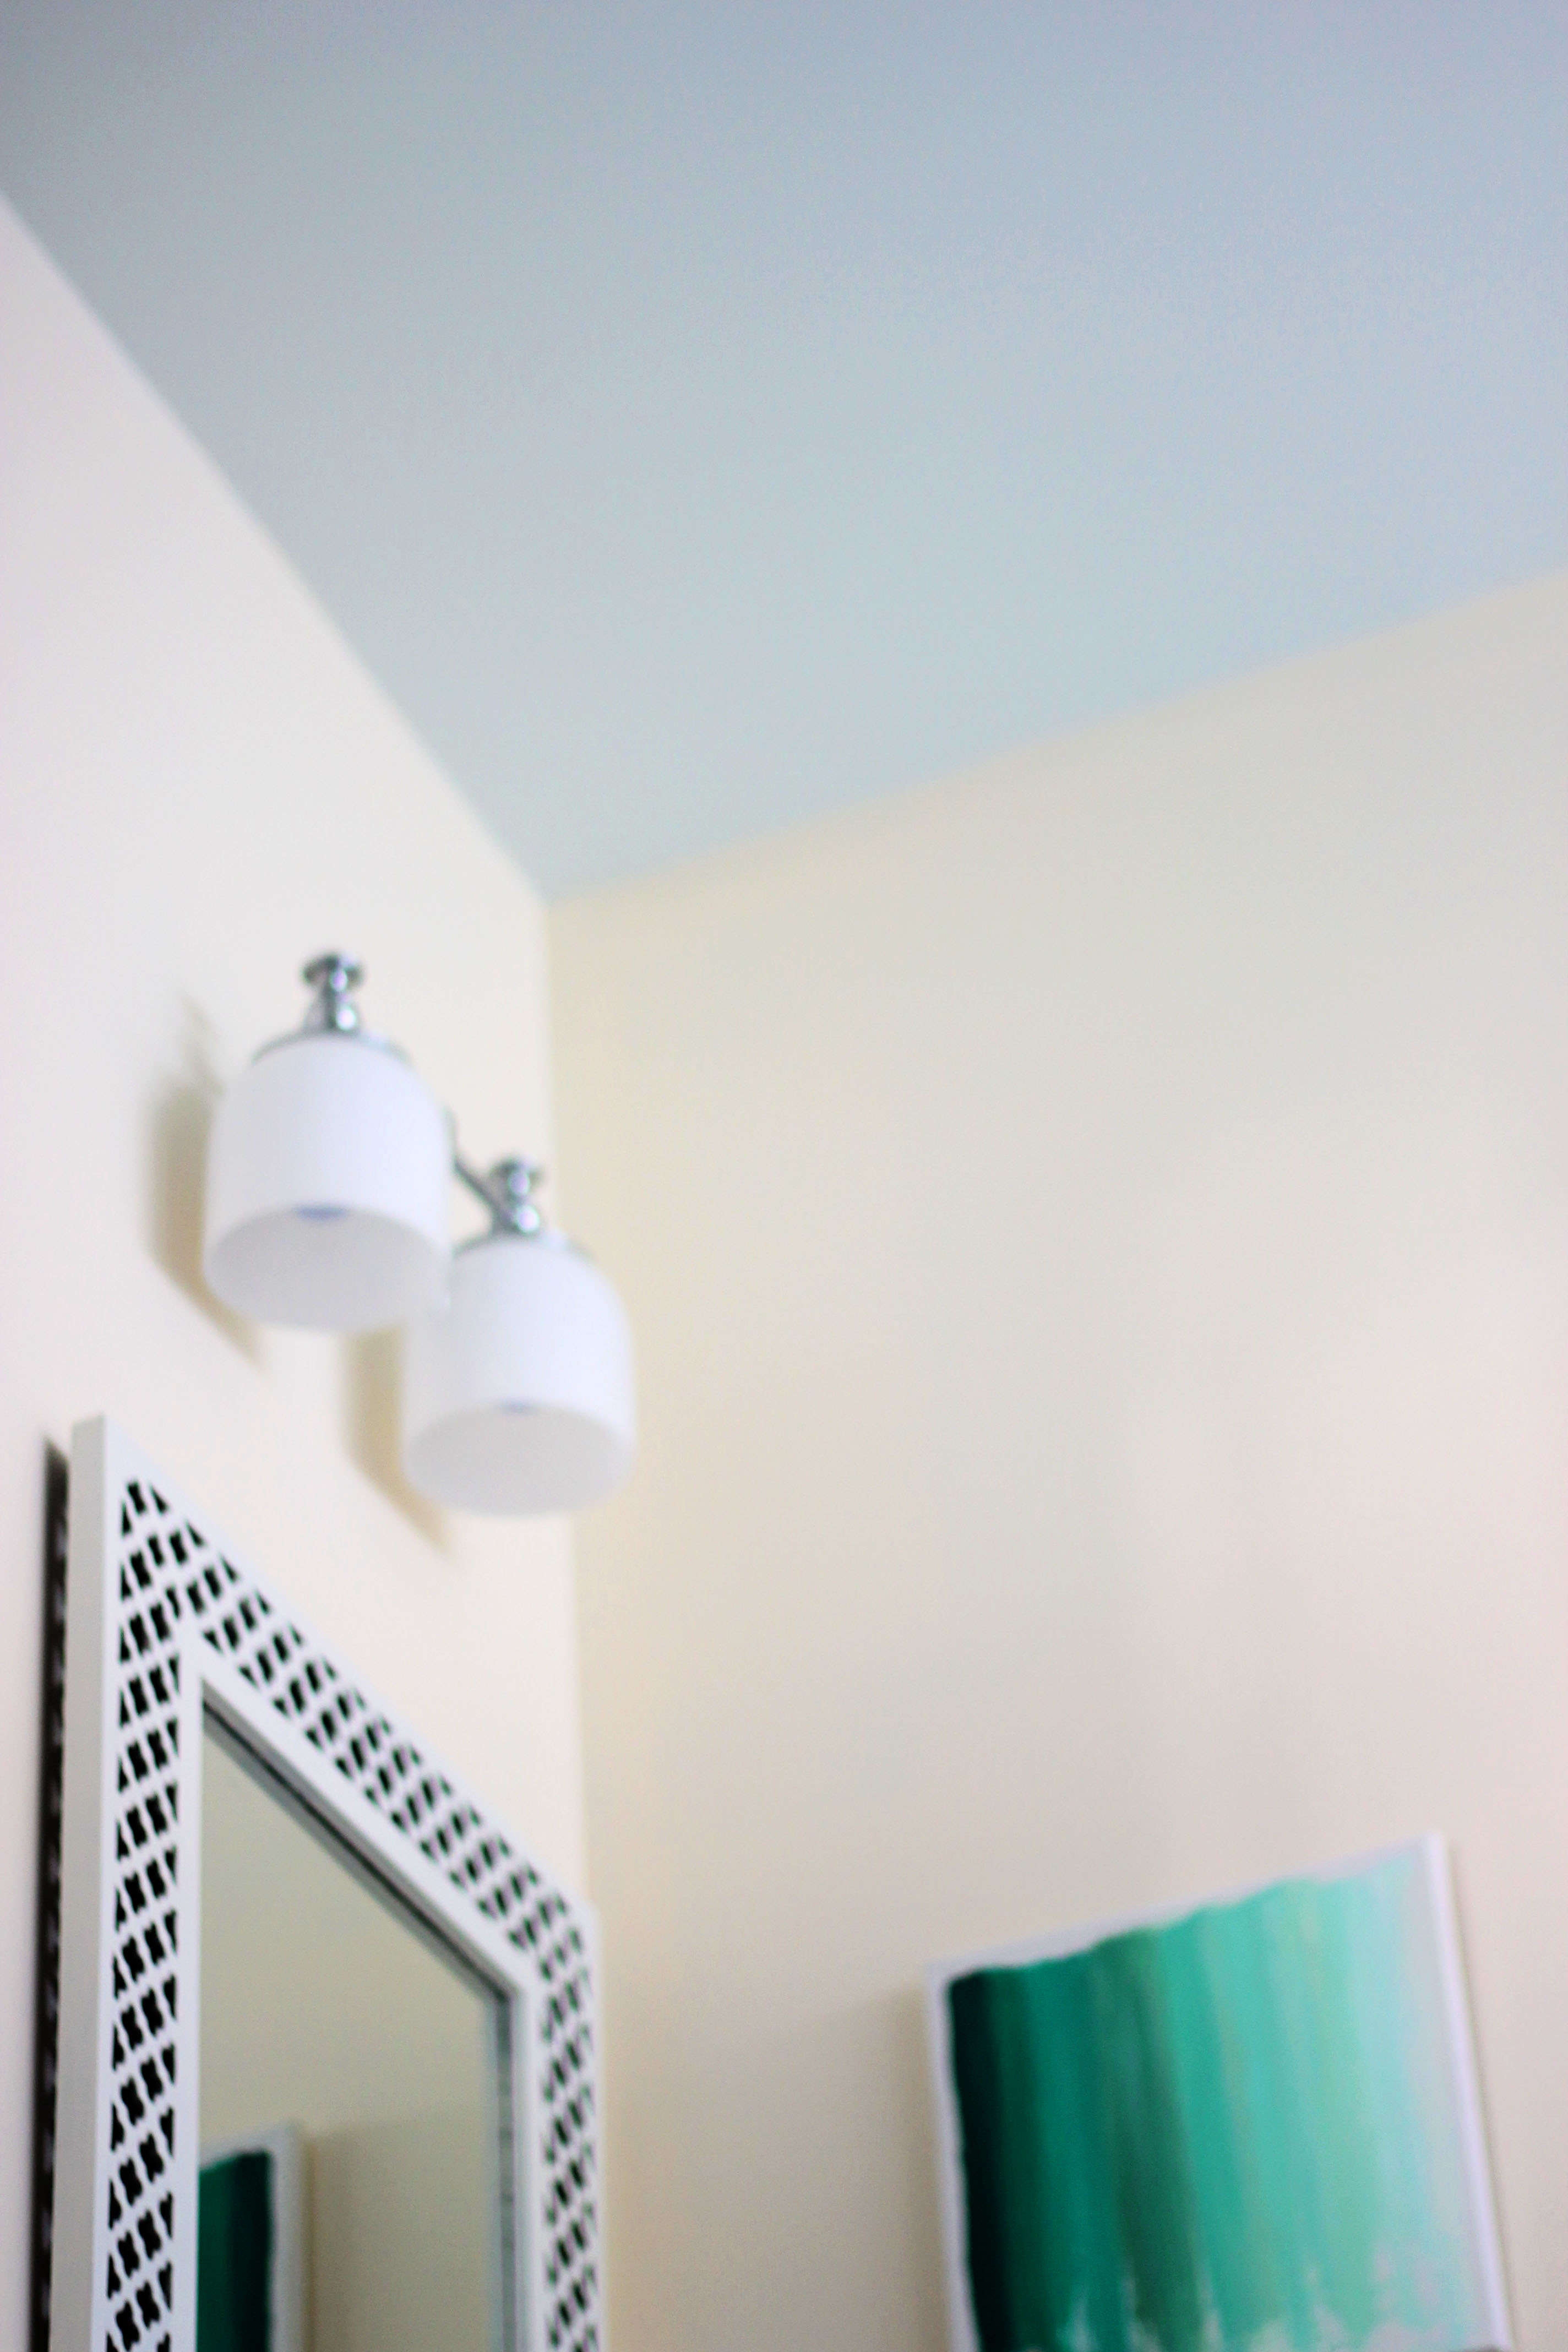 Primer for bathroom ceiling - So You Can See The Ceiling